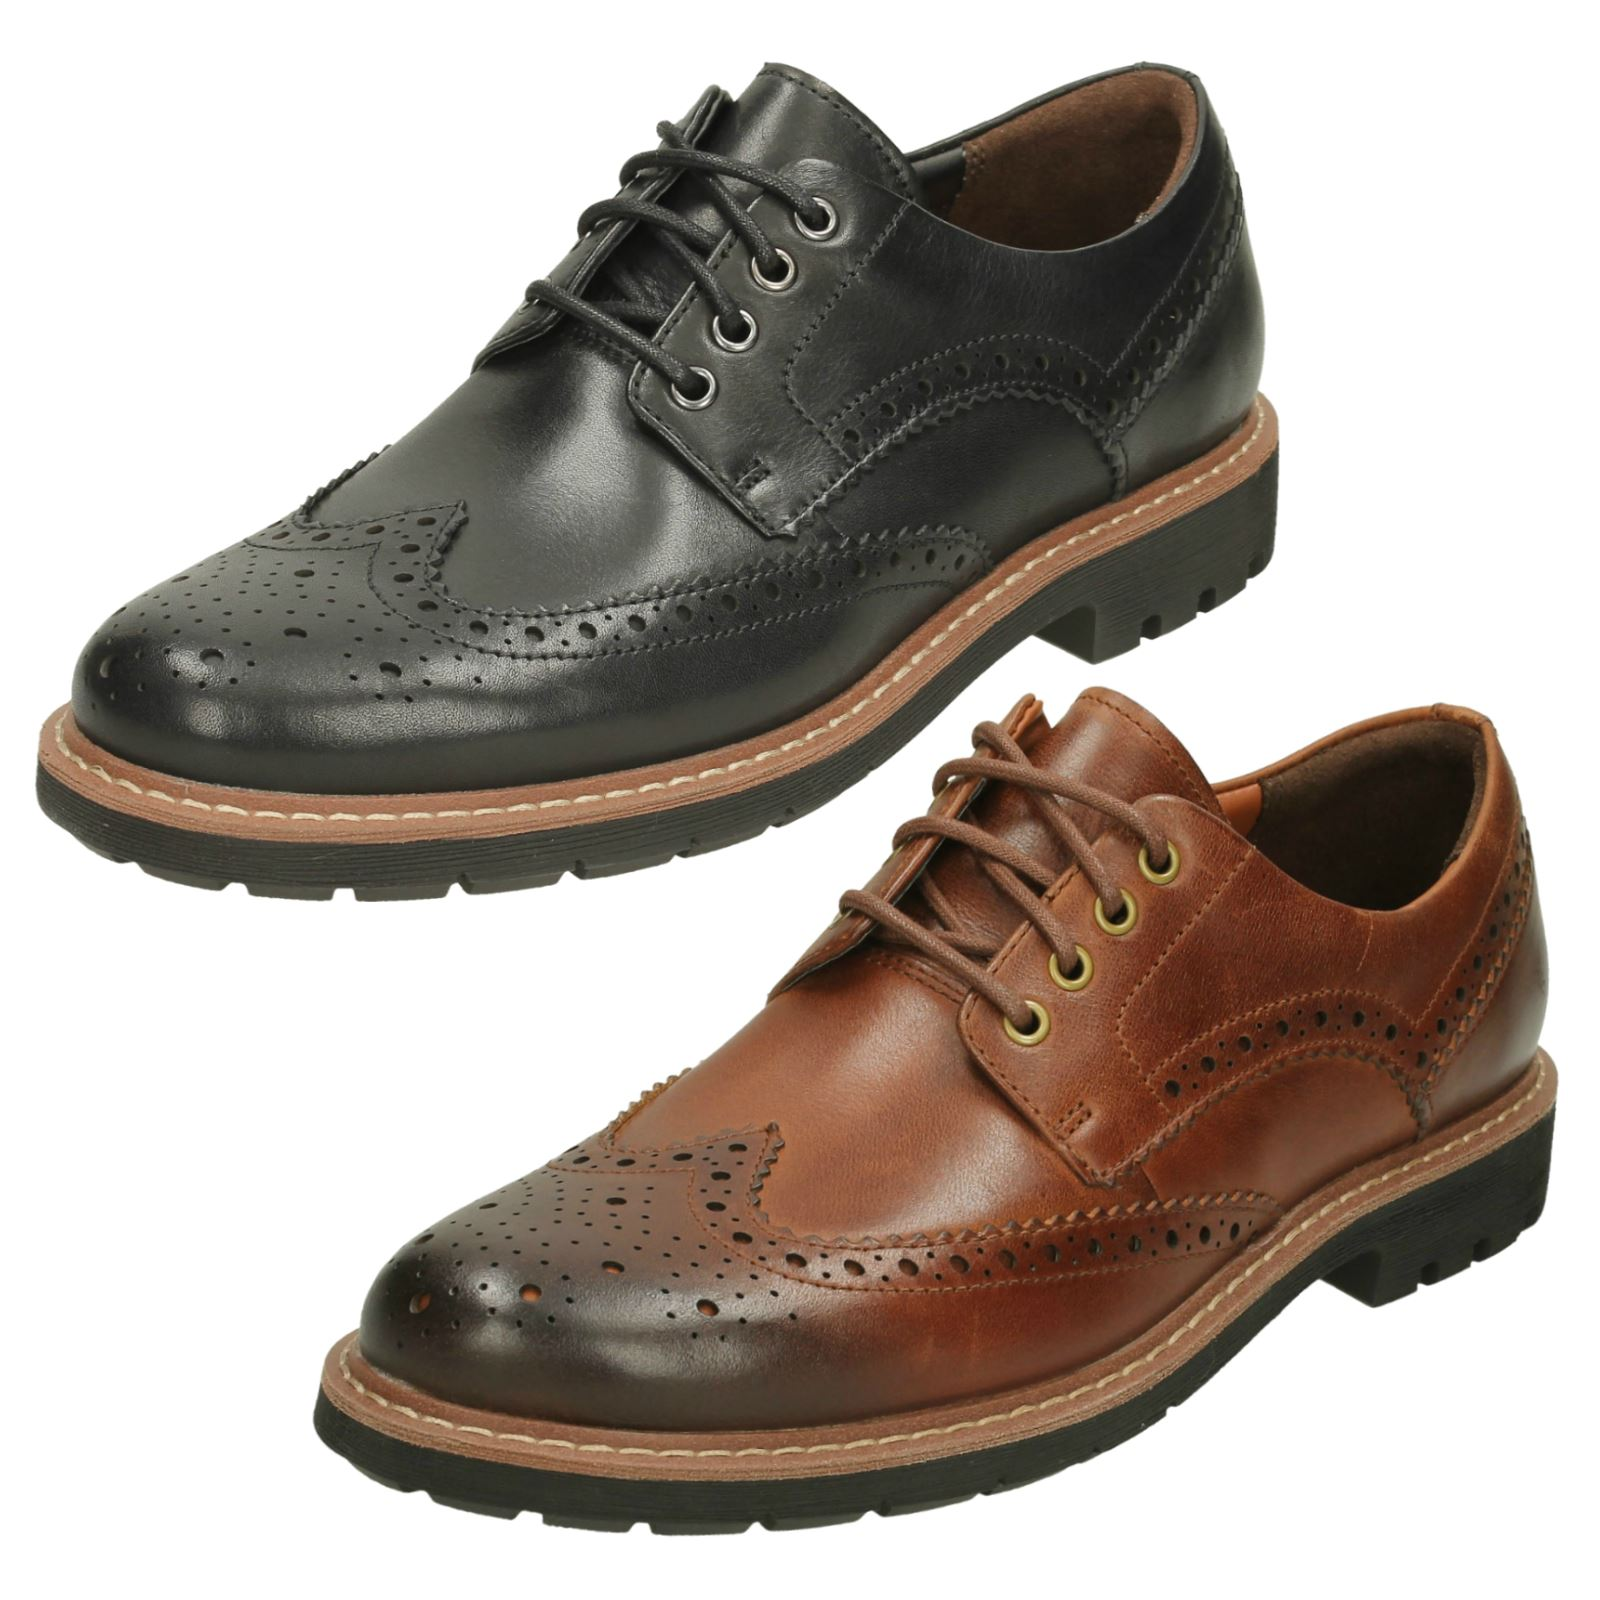 Up Uomo Clarks Formal Lace Up  Leder Brogues Batcombe Wing 13039e